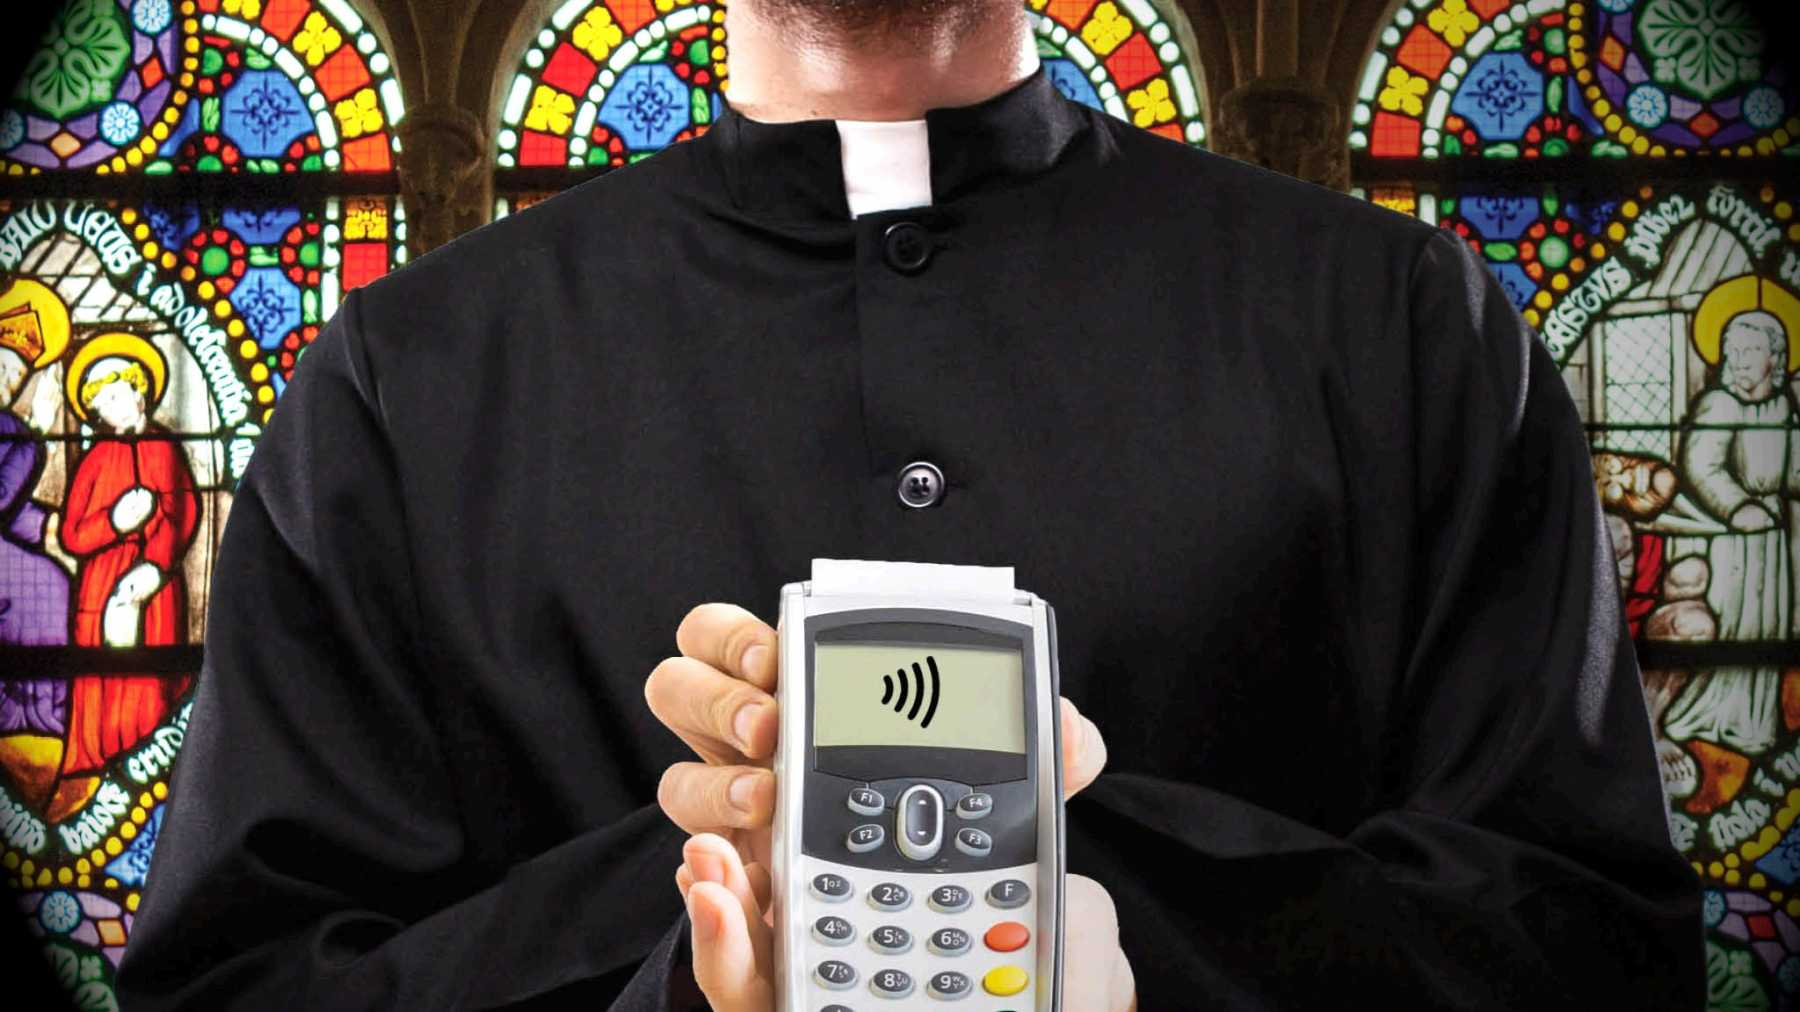 Church Of England Introduces Contactless Pay For Donations | church